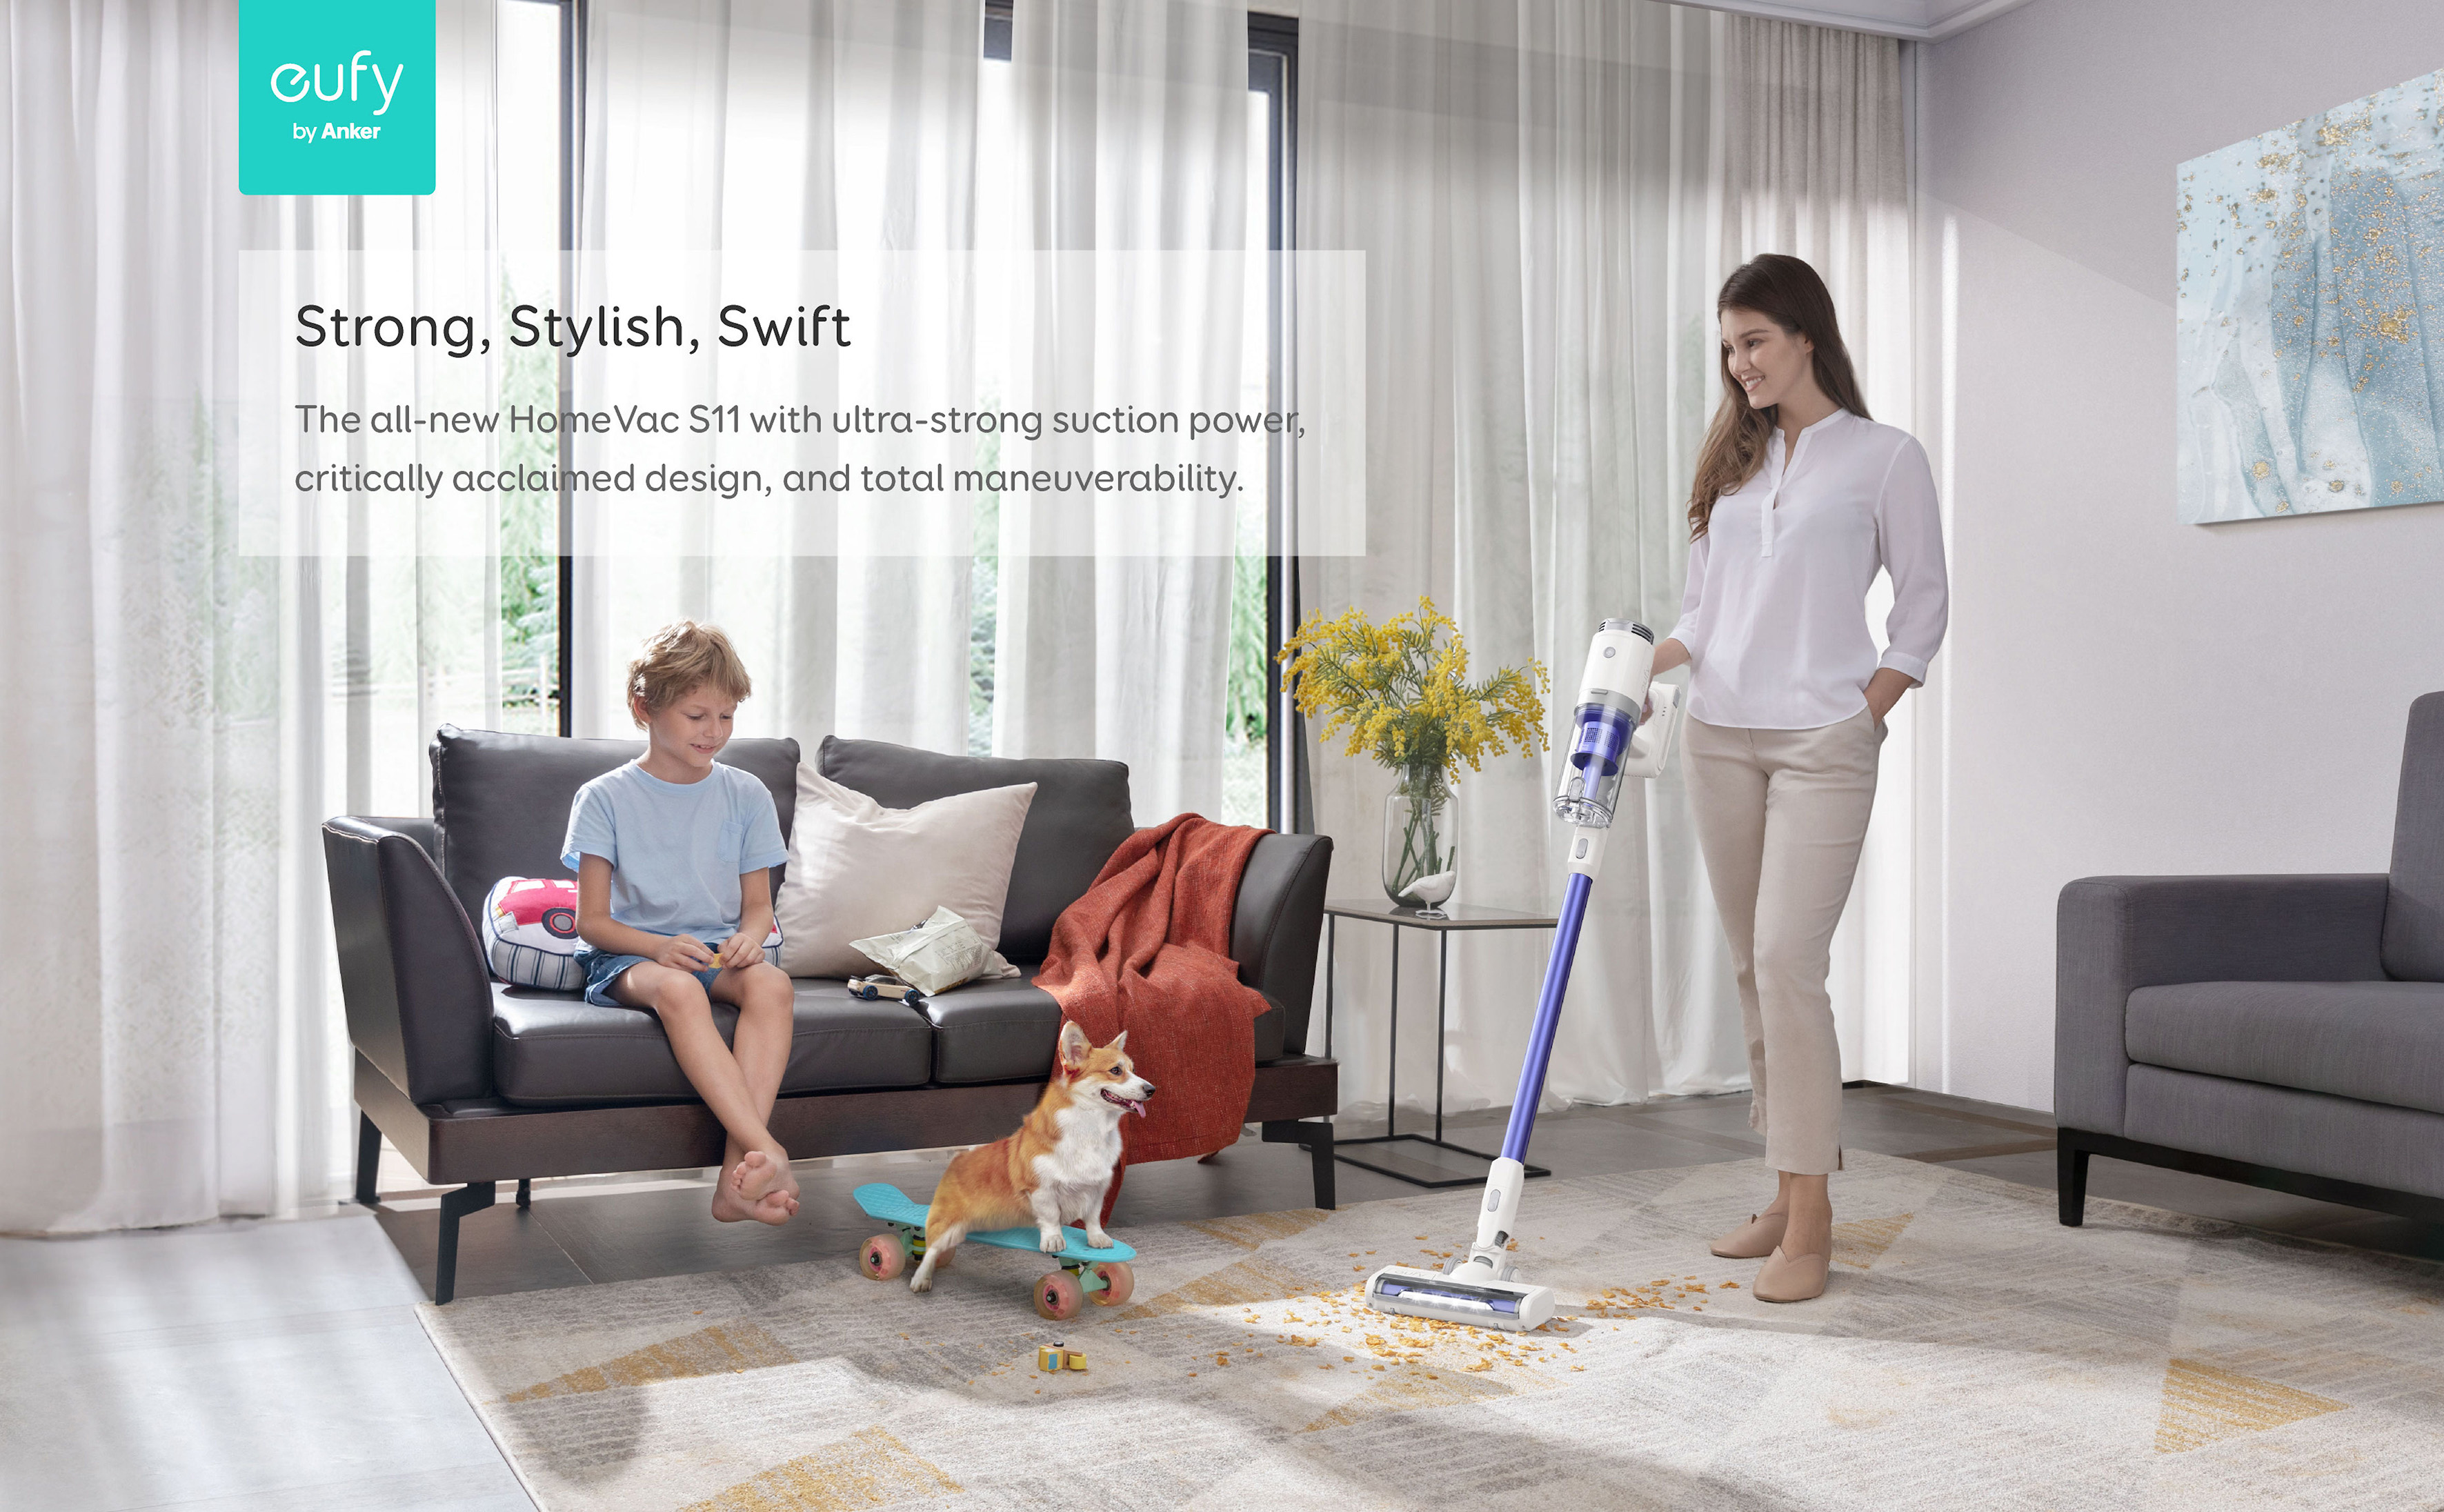 Cleaning is now easy with eufy HomeVac S11, the cordless Go Stick lightweight vacuum cleaner to take on any cleaning task